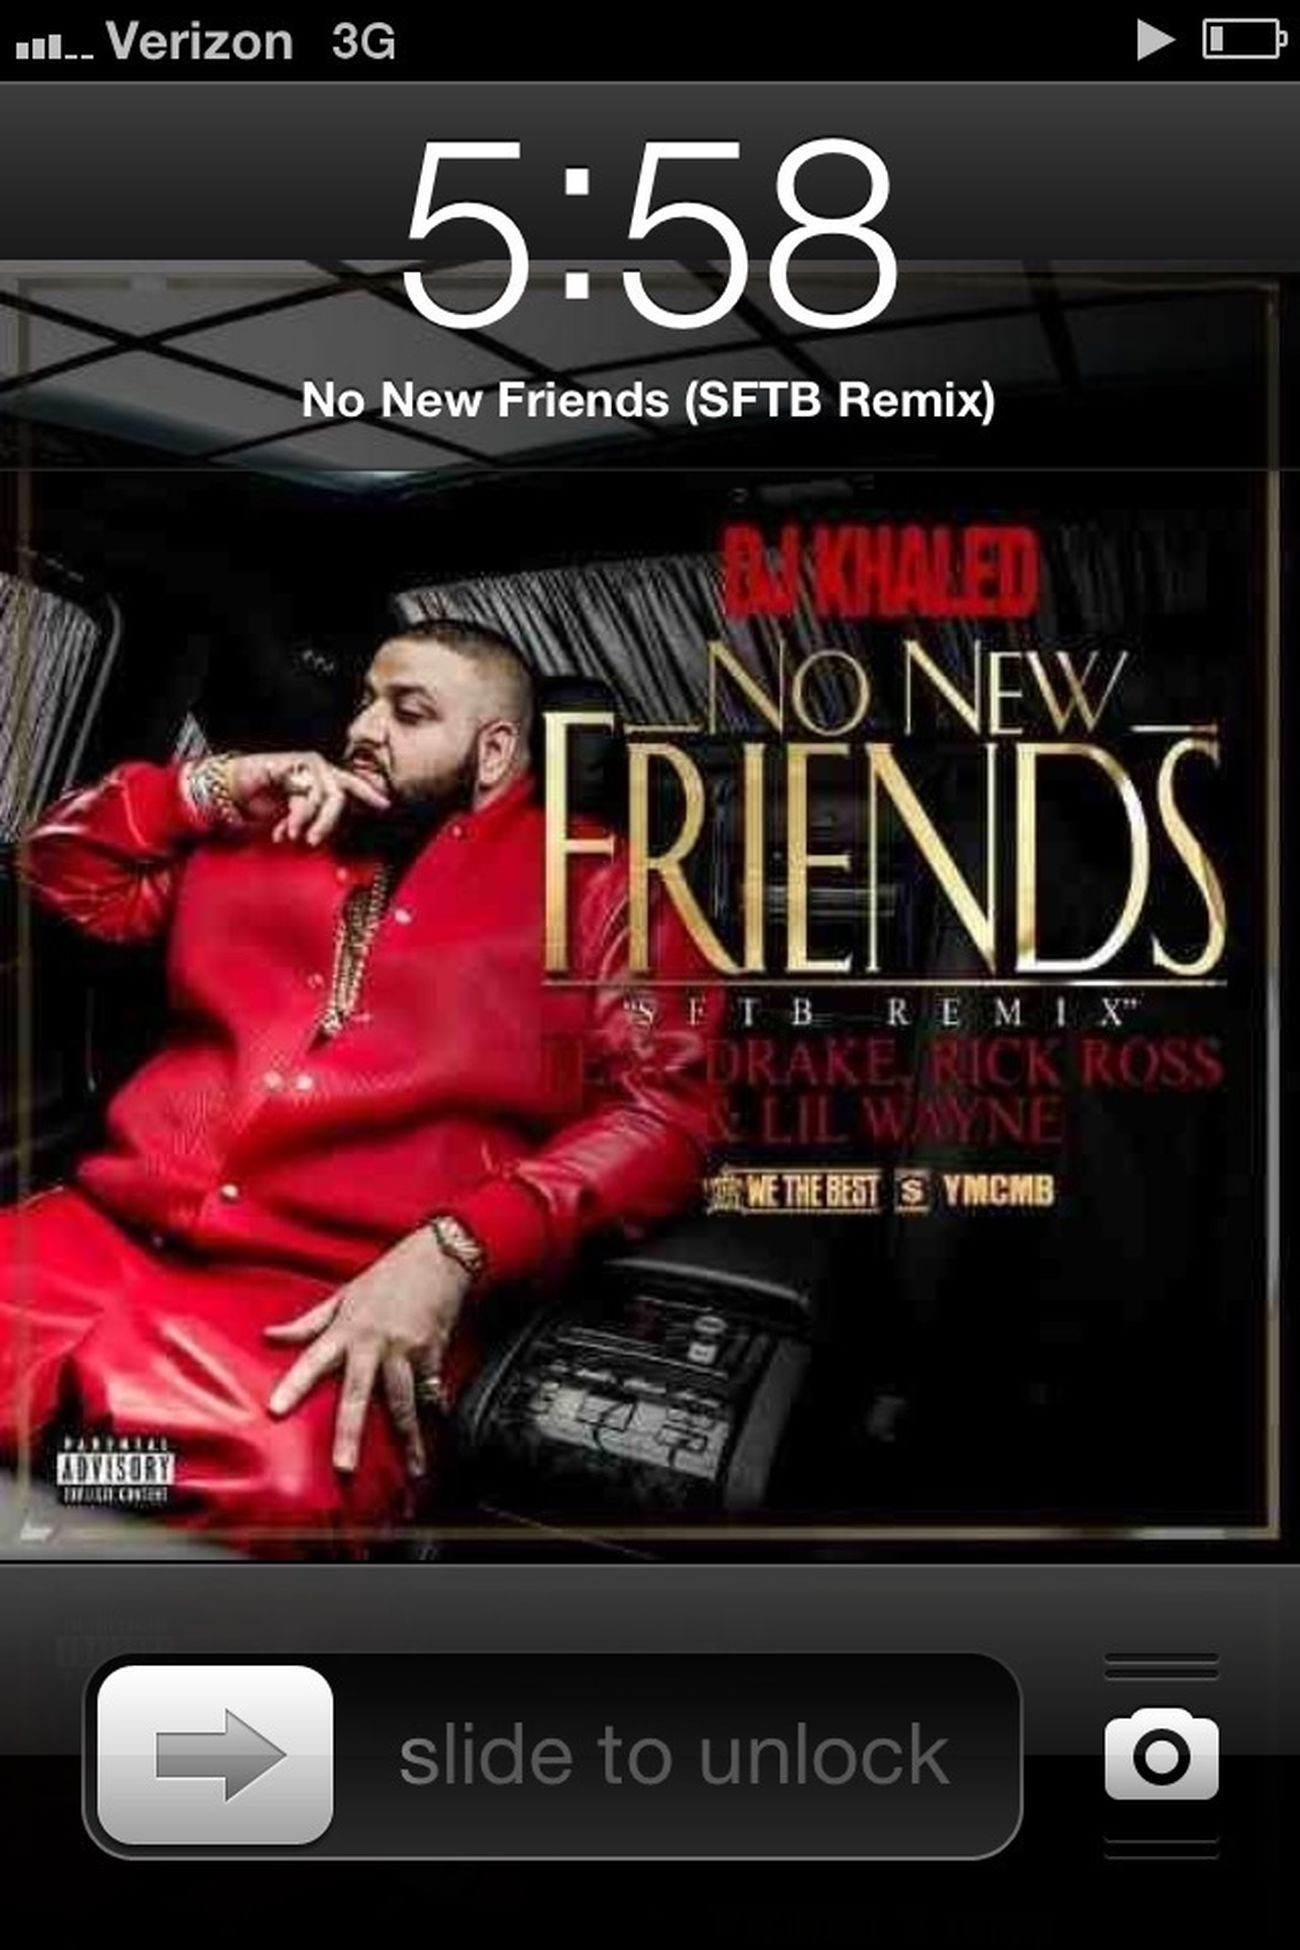 If you never heard me call you a friend then you AINT ONE ...